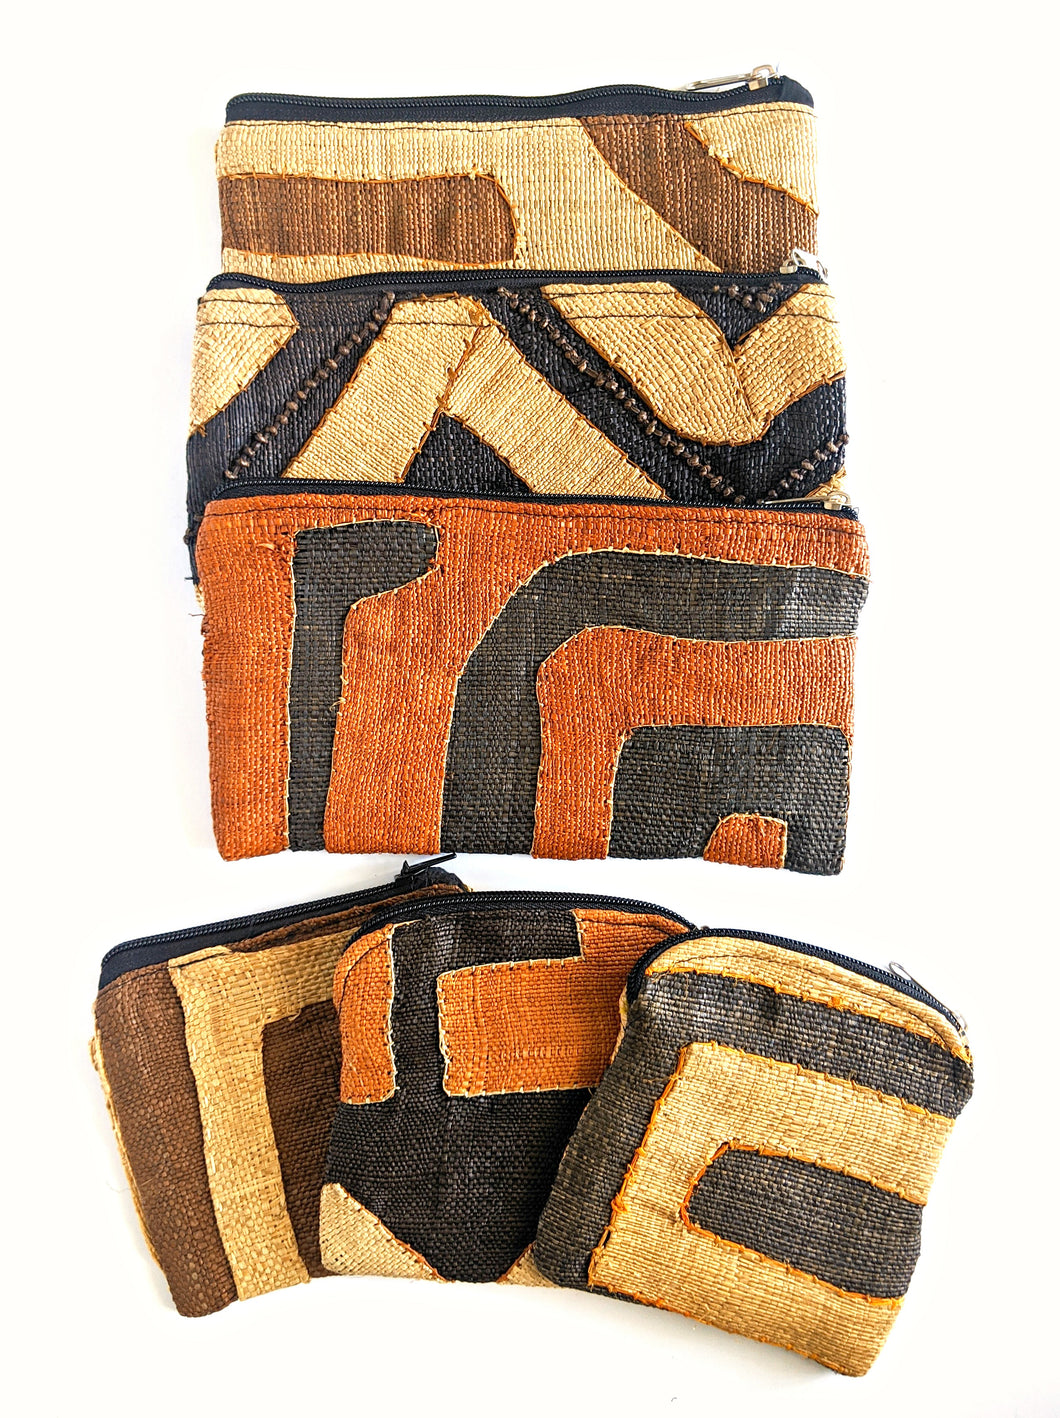 Kuba Cloth Coin Purse Bag Sets (Slight Imperfections)